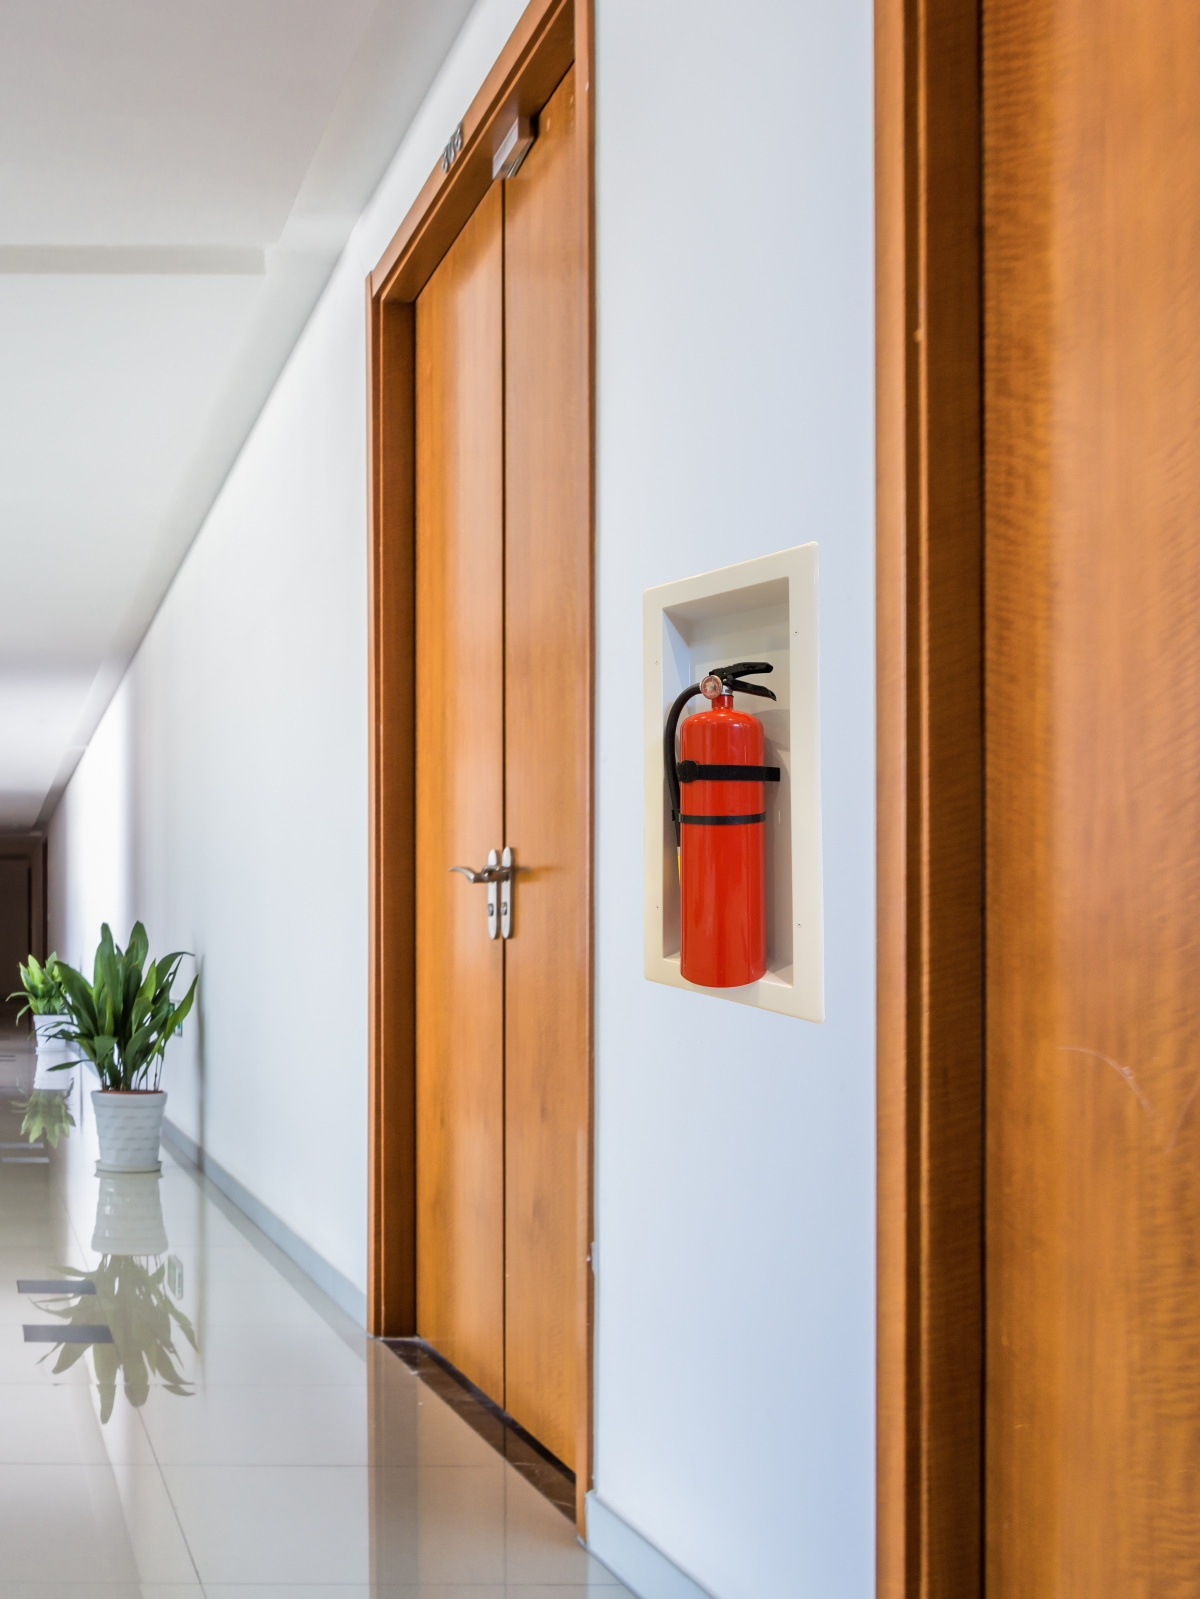 Easy Comply Cabinet with Extinguisher in a Corridor